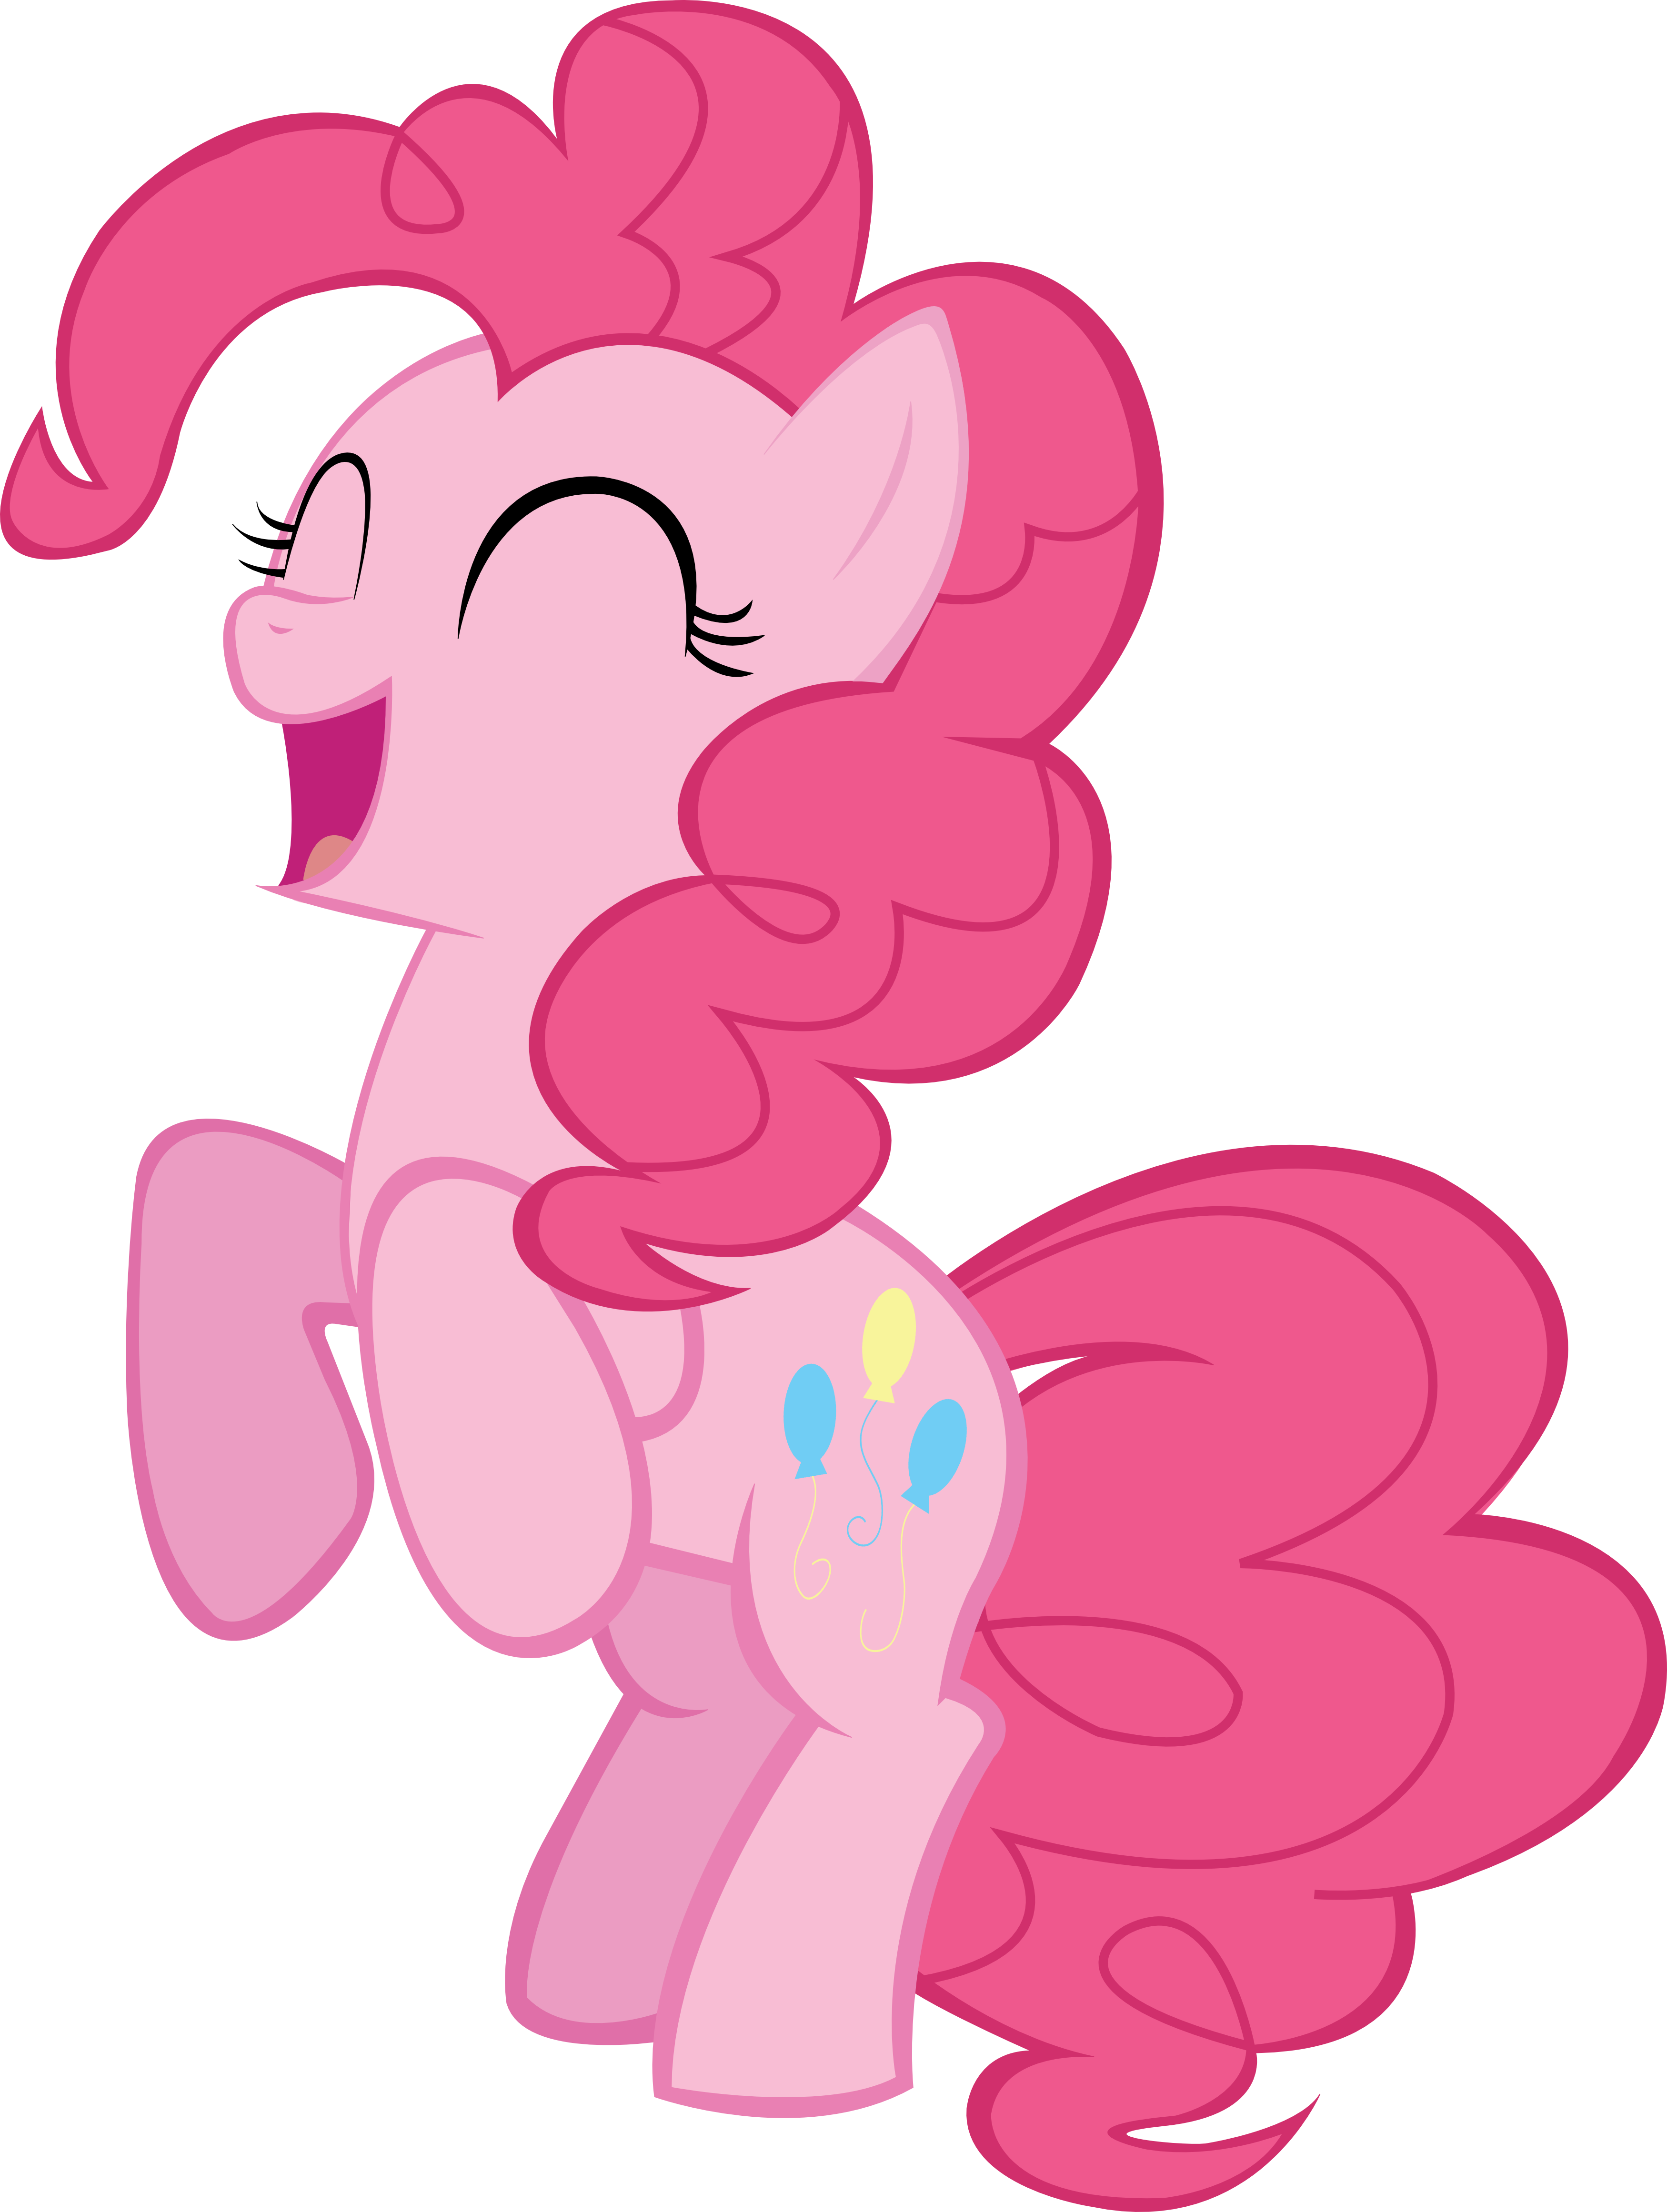 Pinkie pie laughing png. By peachspices d jwey